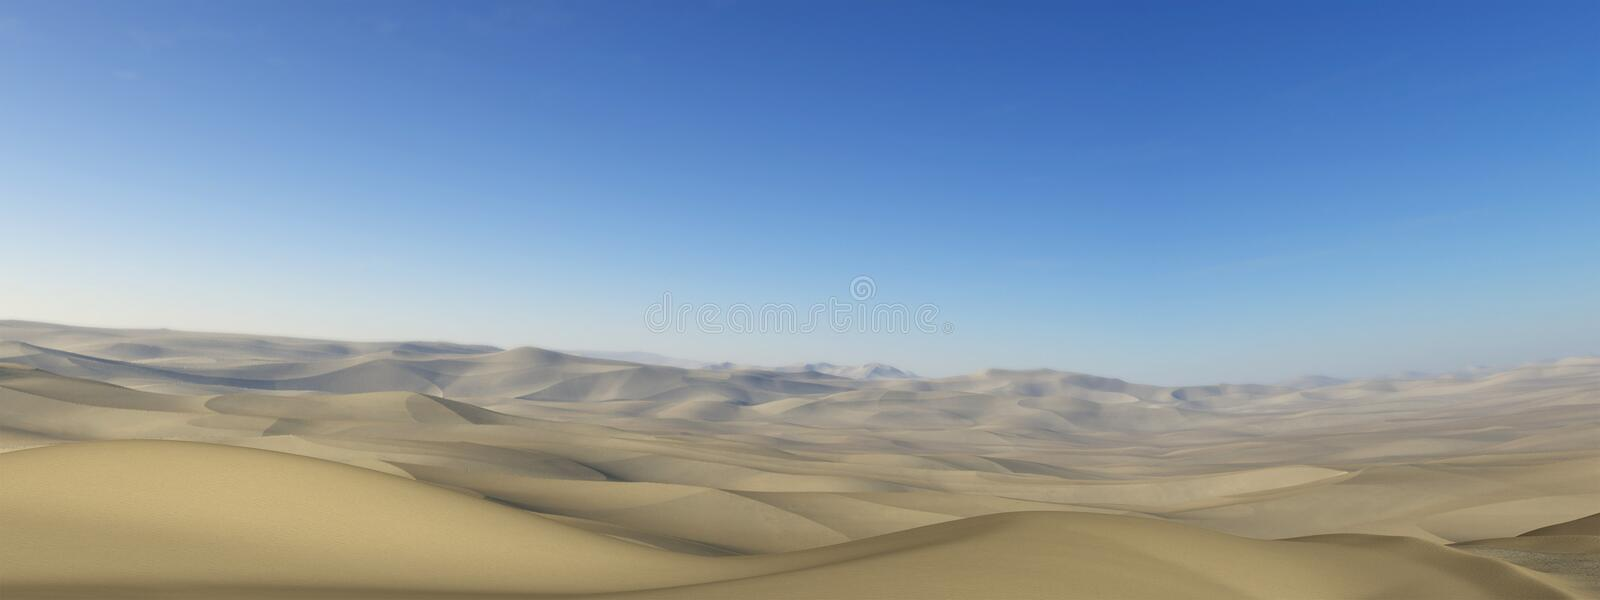 Desolate Desert Panoramic Panorama Illustration. Illustration of a desolate barren sand desert background. Orientation is in a banner, panorama, or panoramic stock illustration